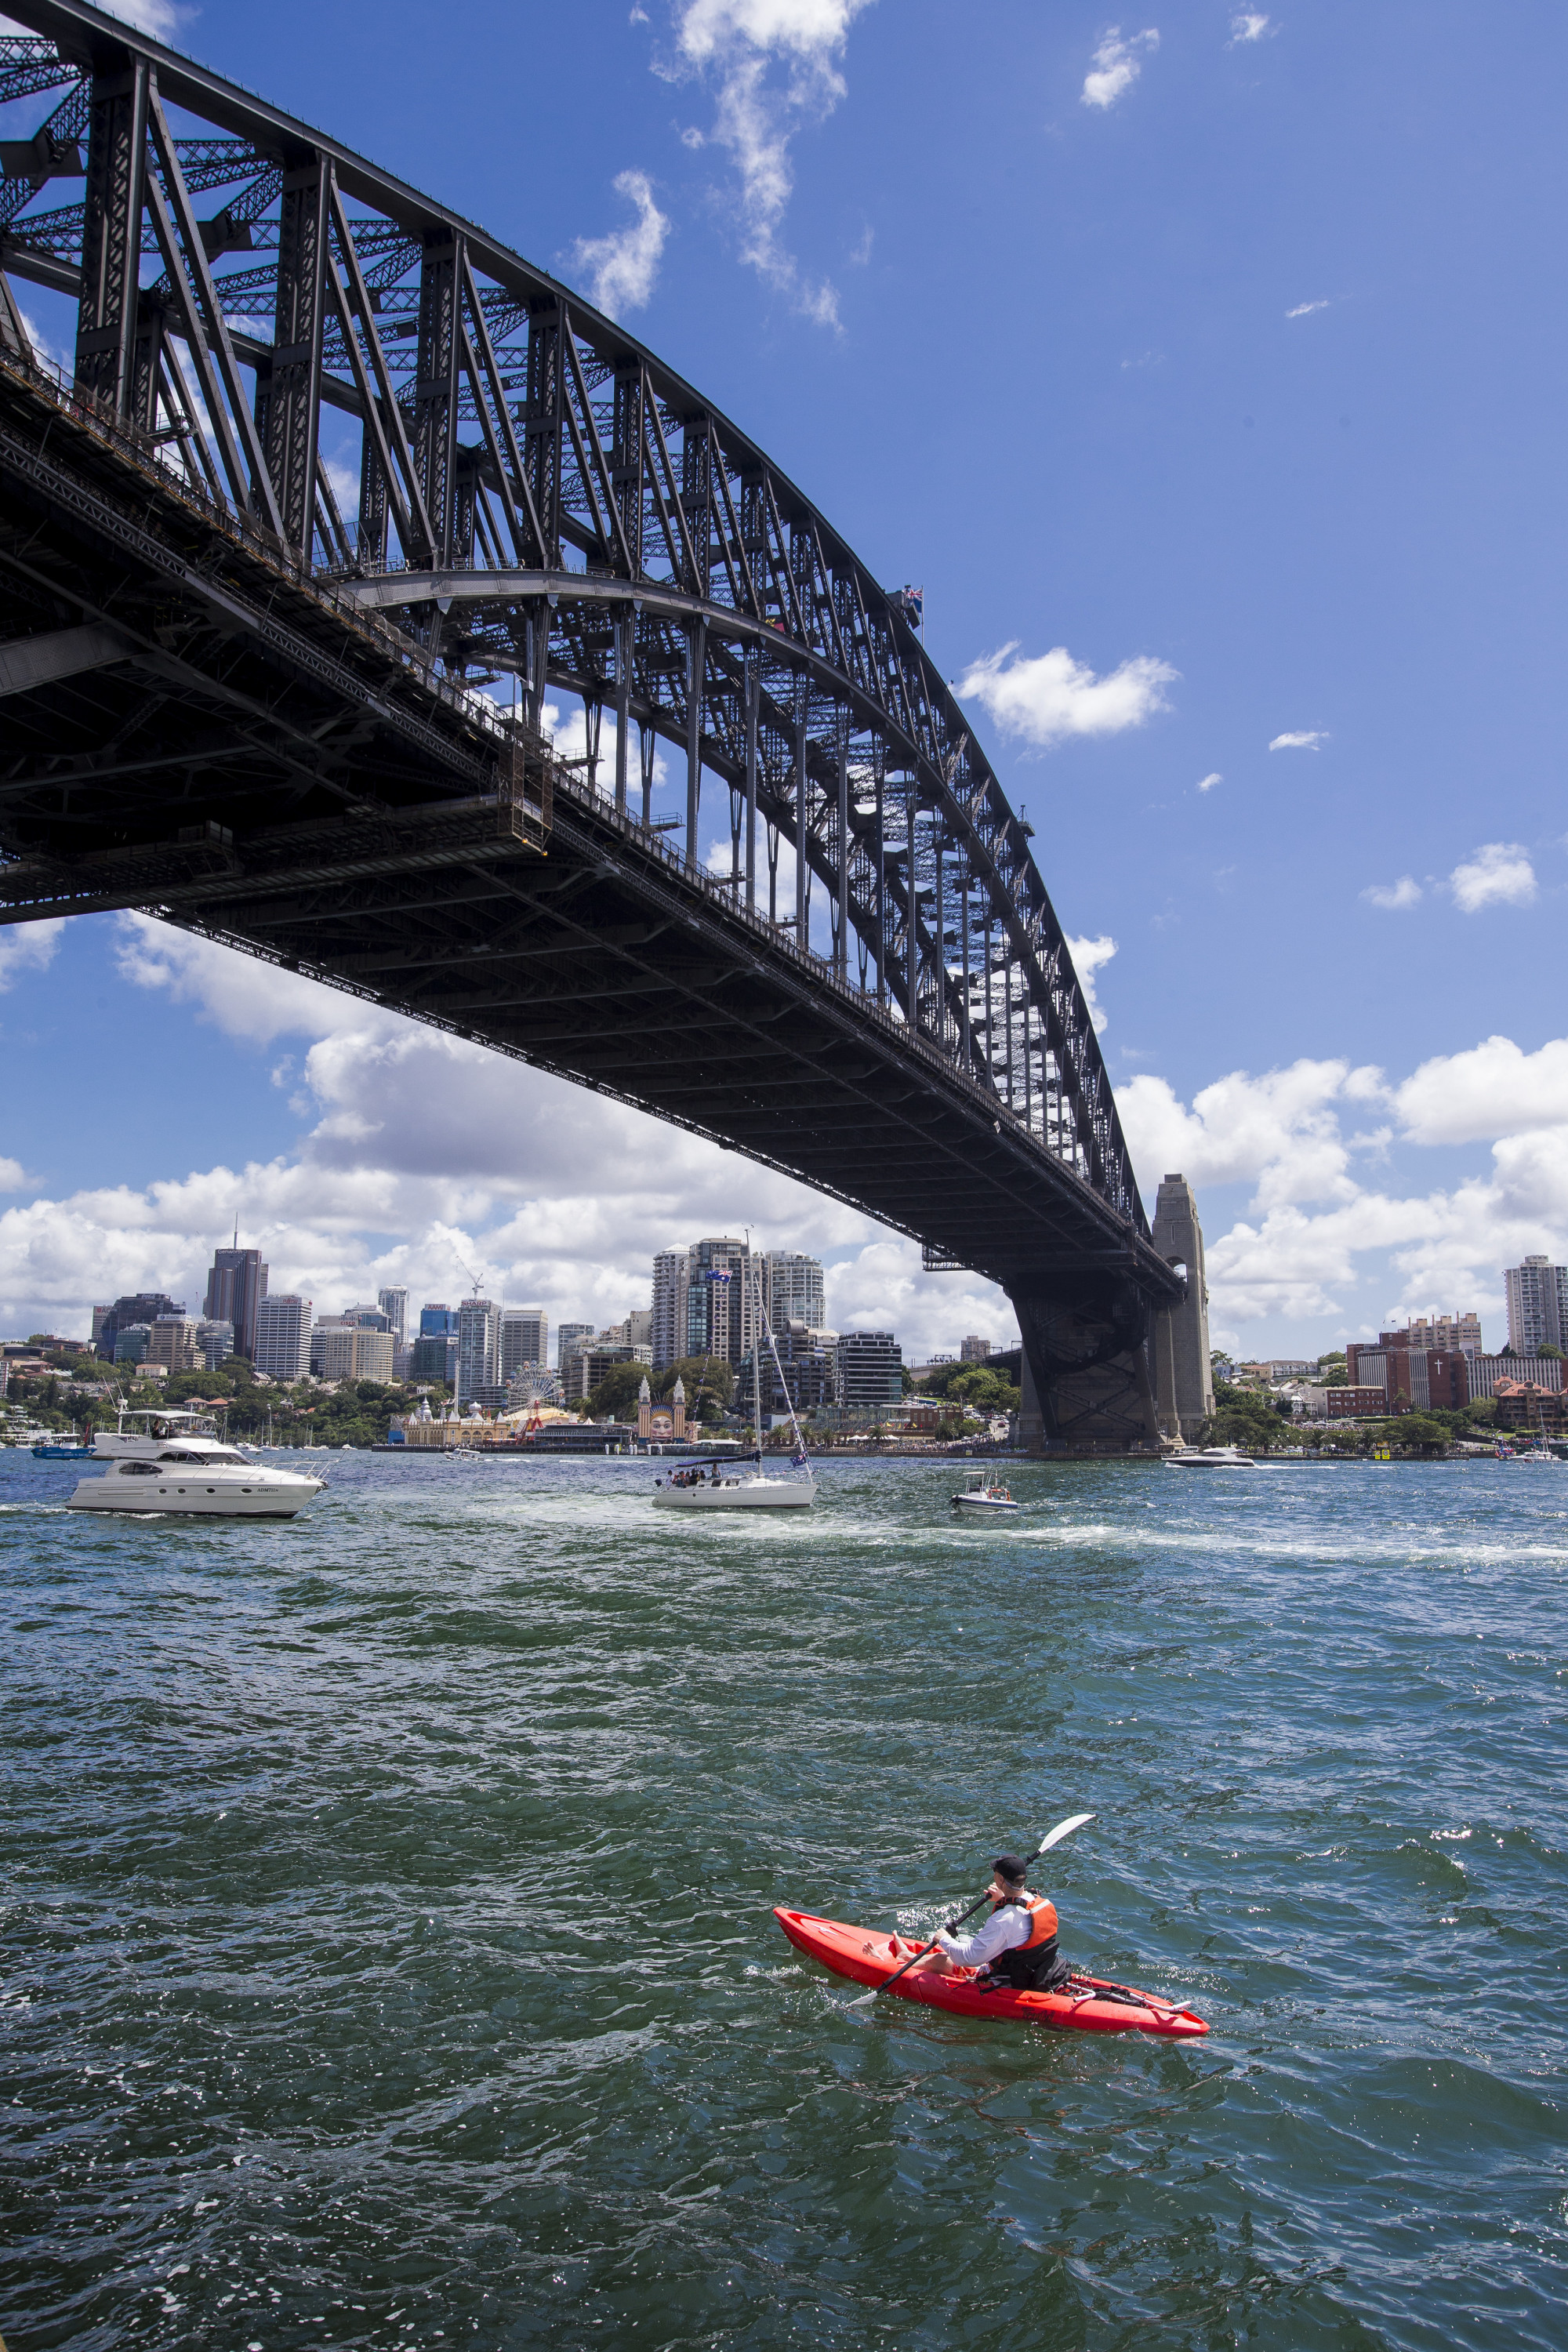 someone kayaking on the sydney harbour